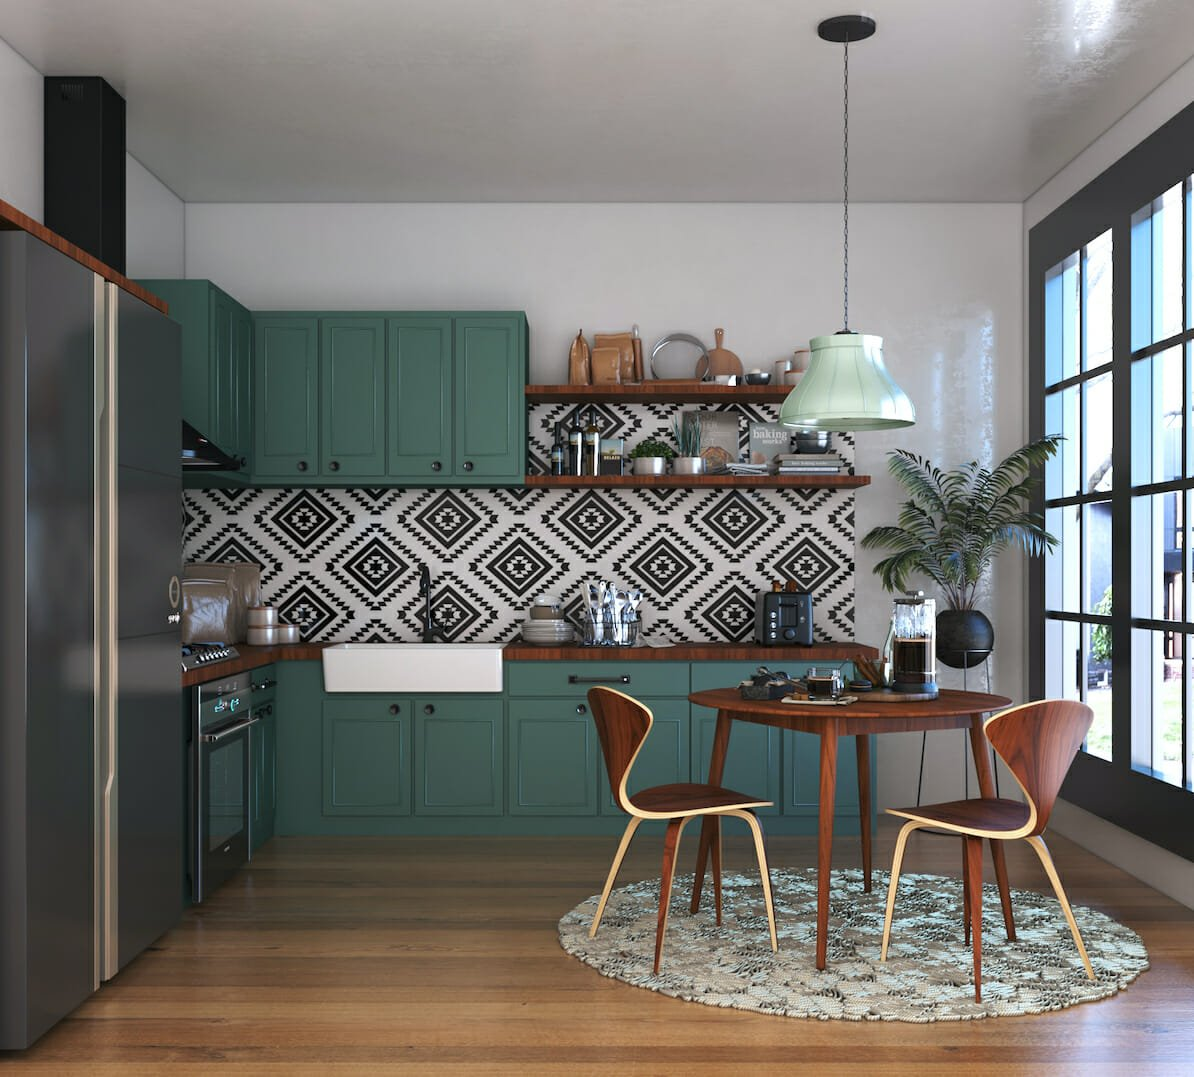 Kitchen design ideas - statement tile backsplash